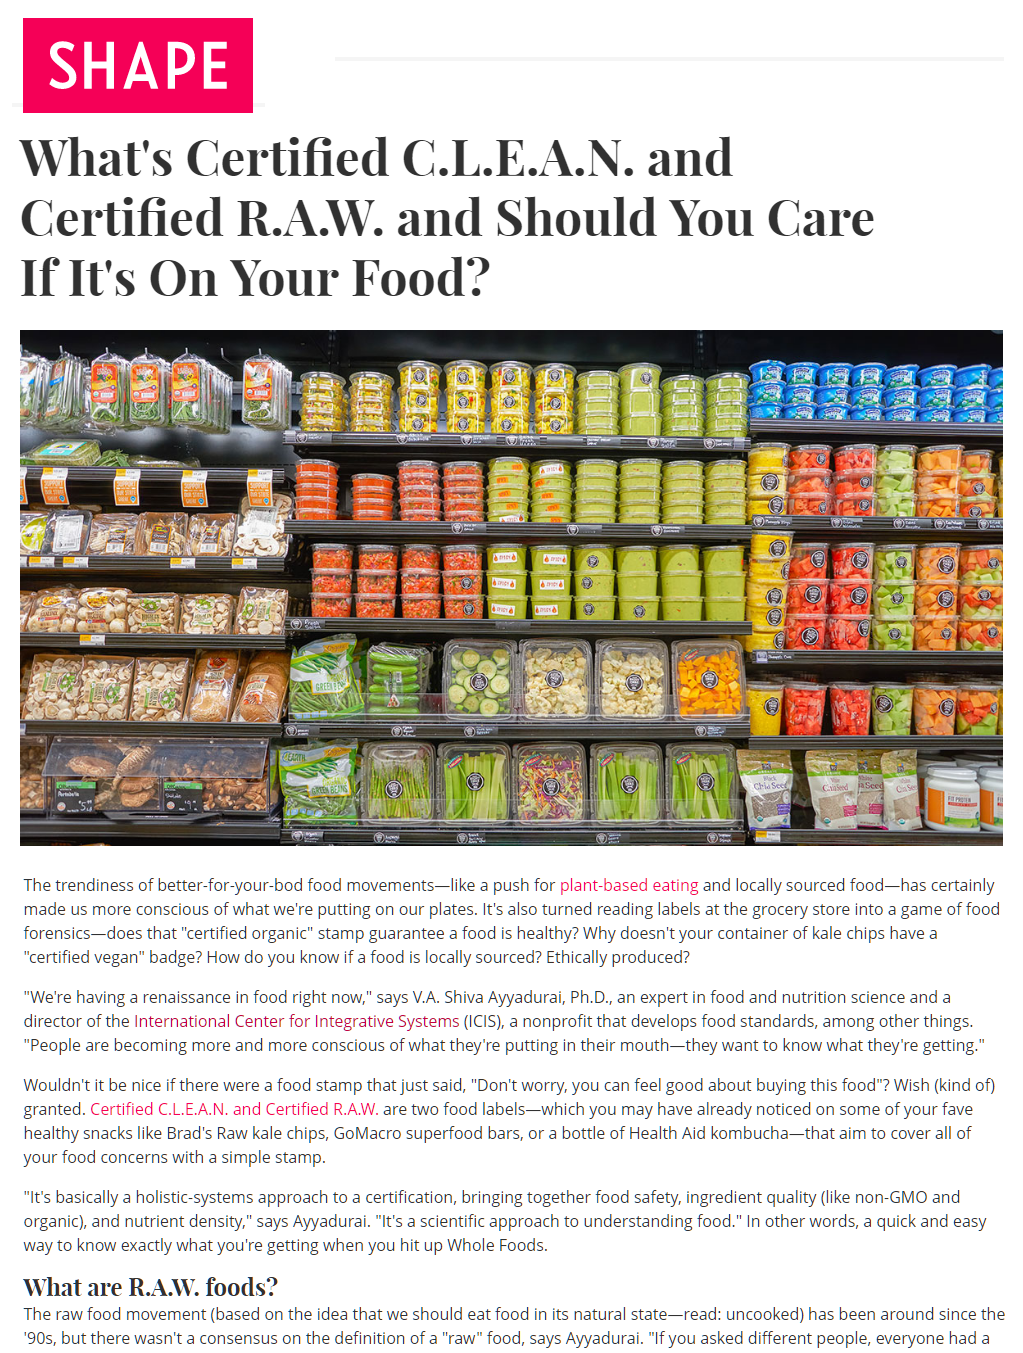 Whats Certified C.L.E.A.N. and Certified R.A.W. and Should You care If It's On Your Food